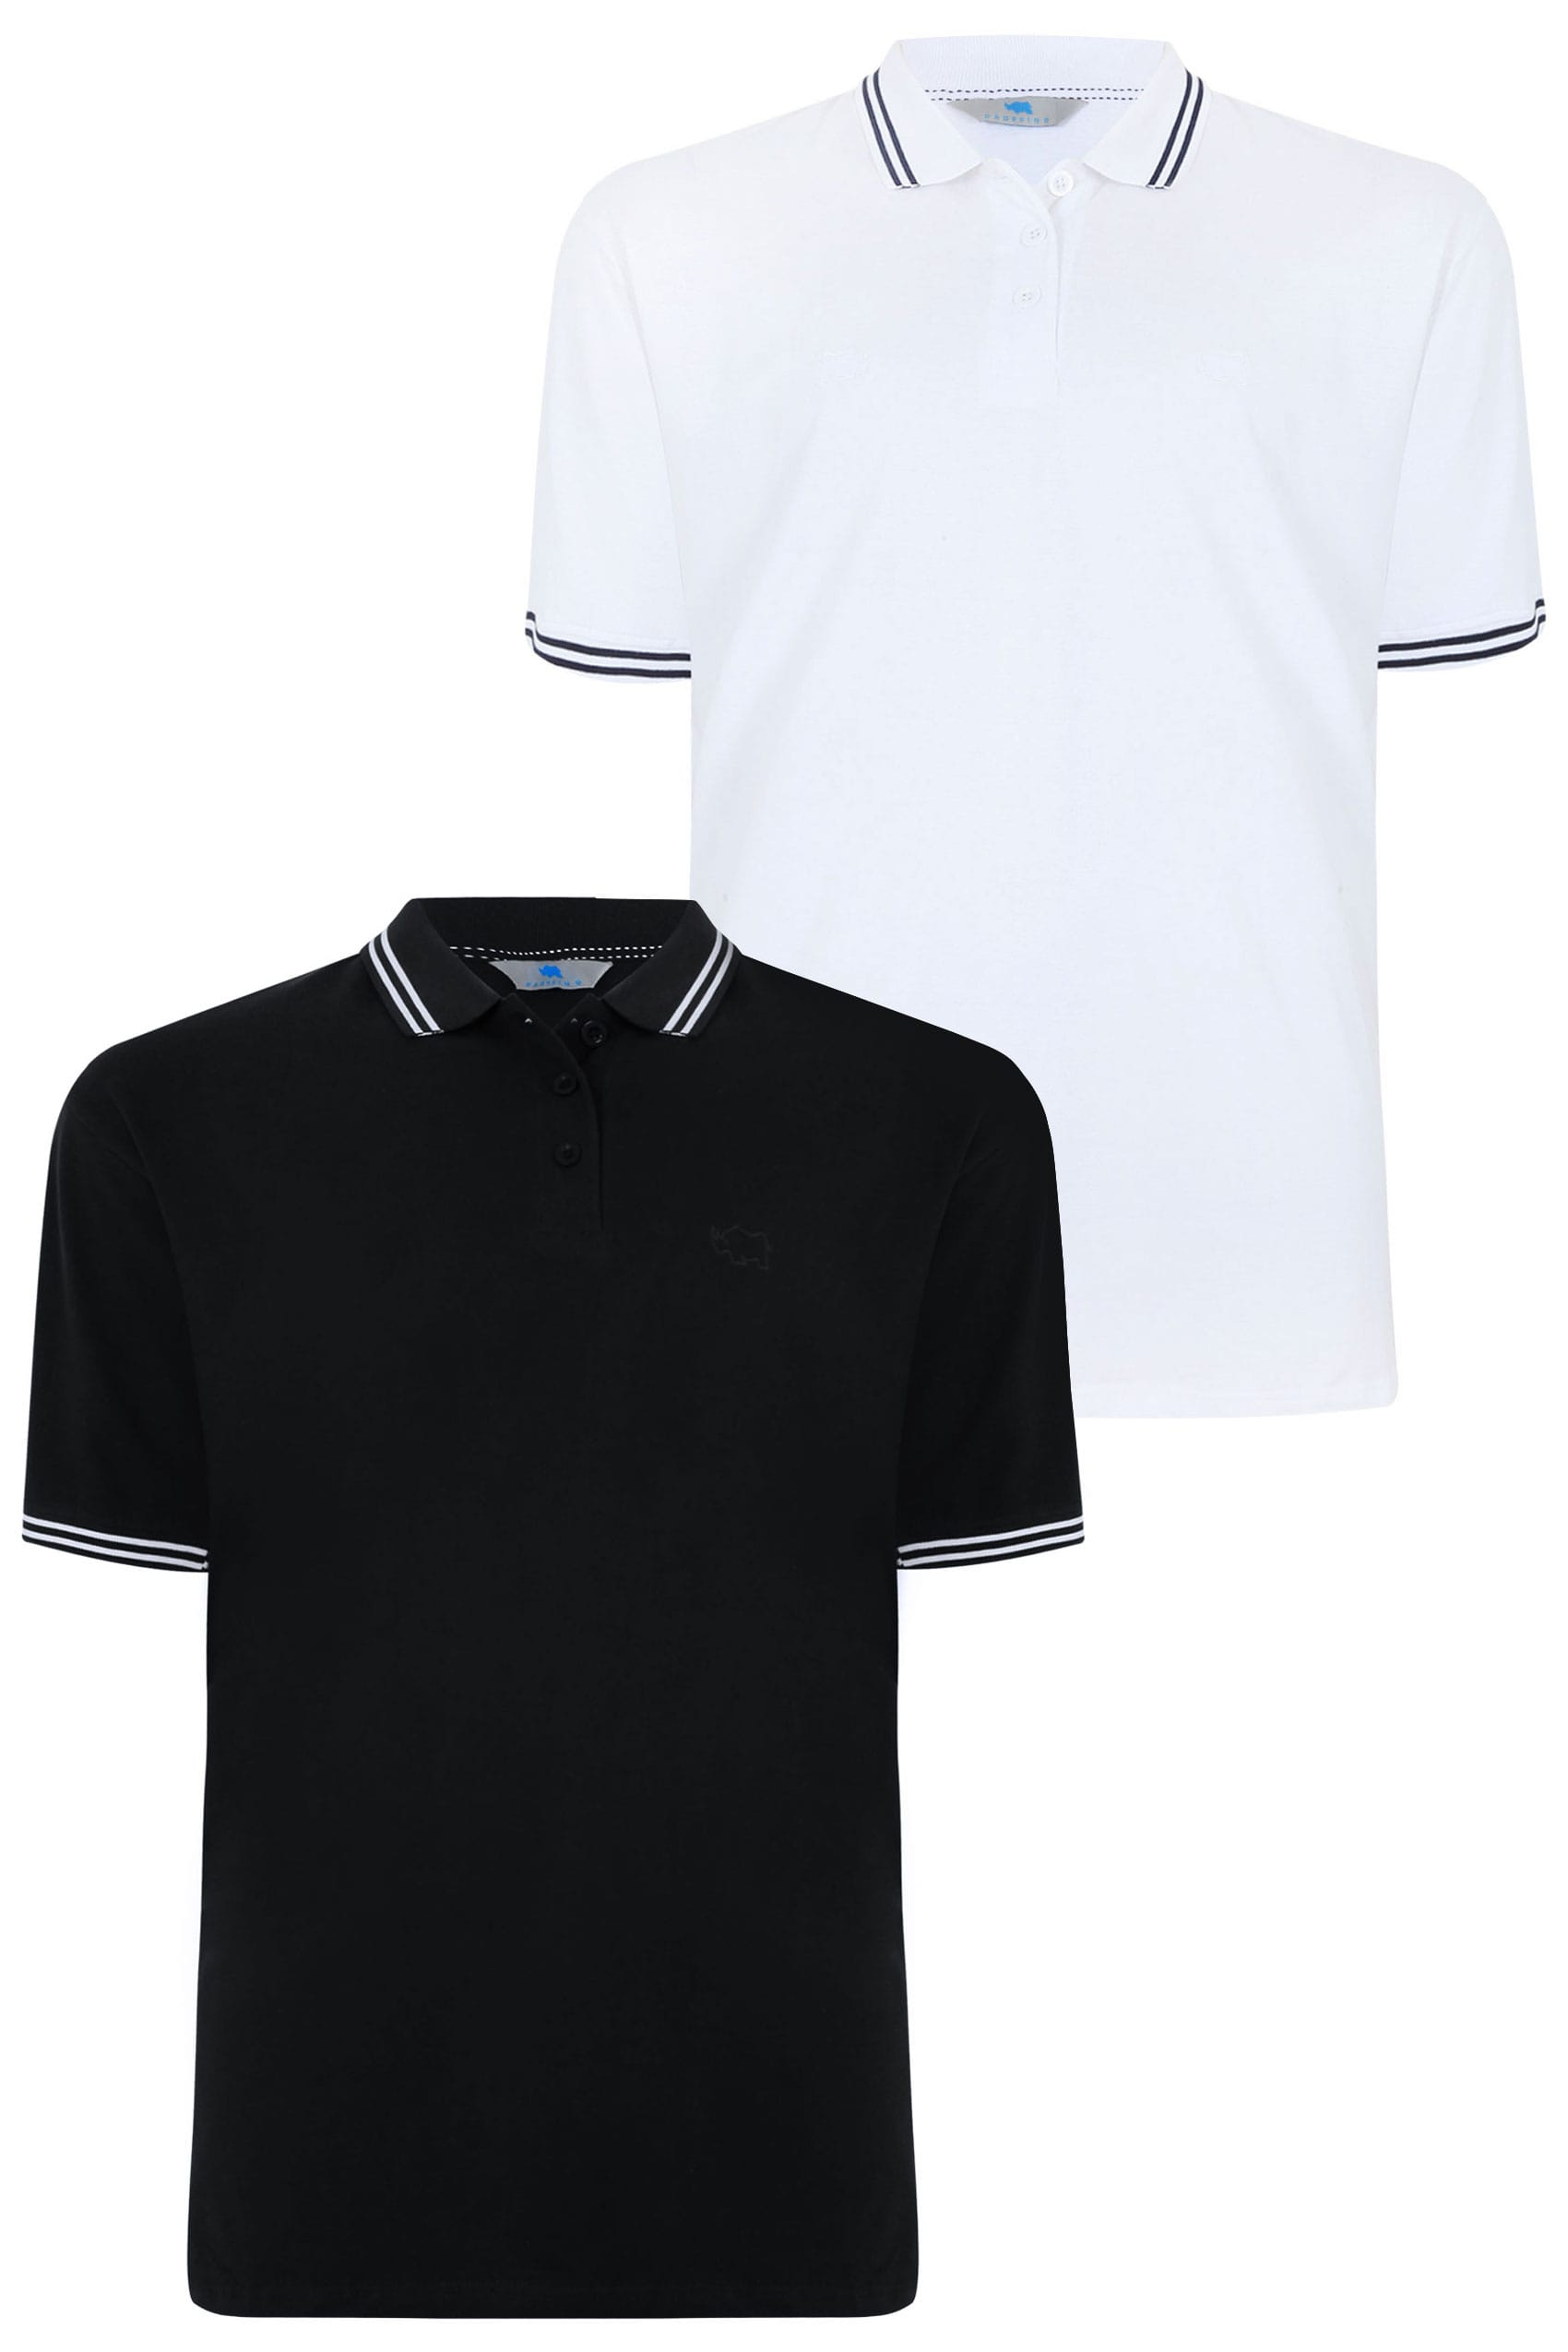 new style f5bf0 60b09 2 PACK BadRhino Black & White Polo Shirt With Stripe Detail